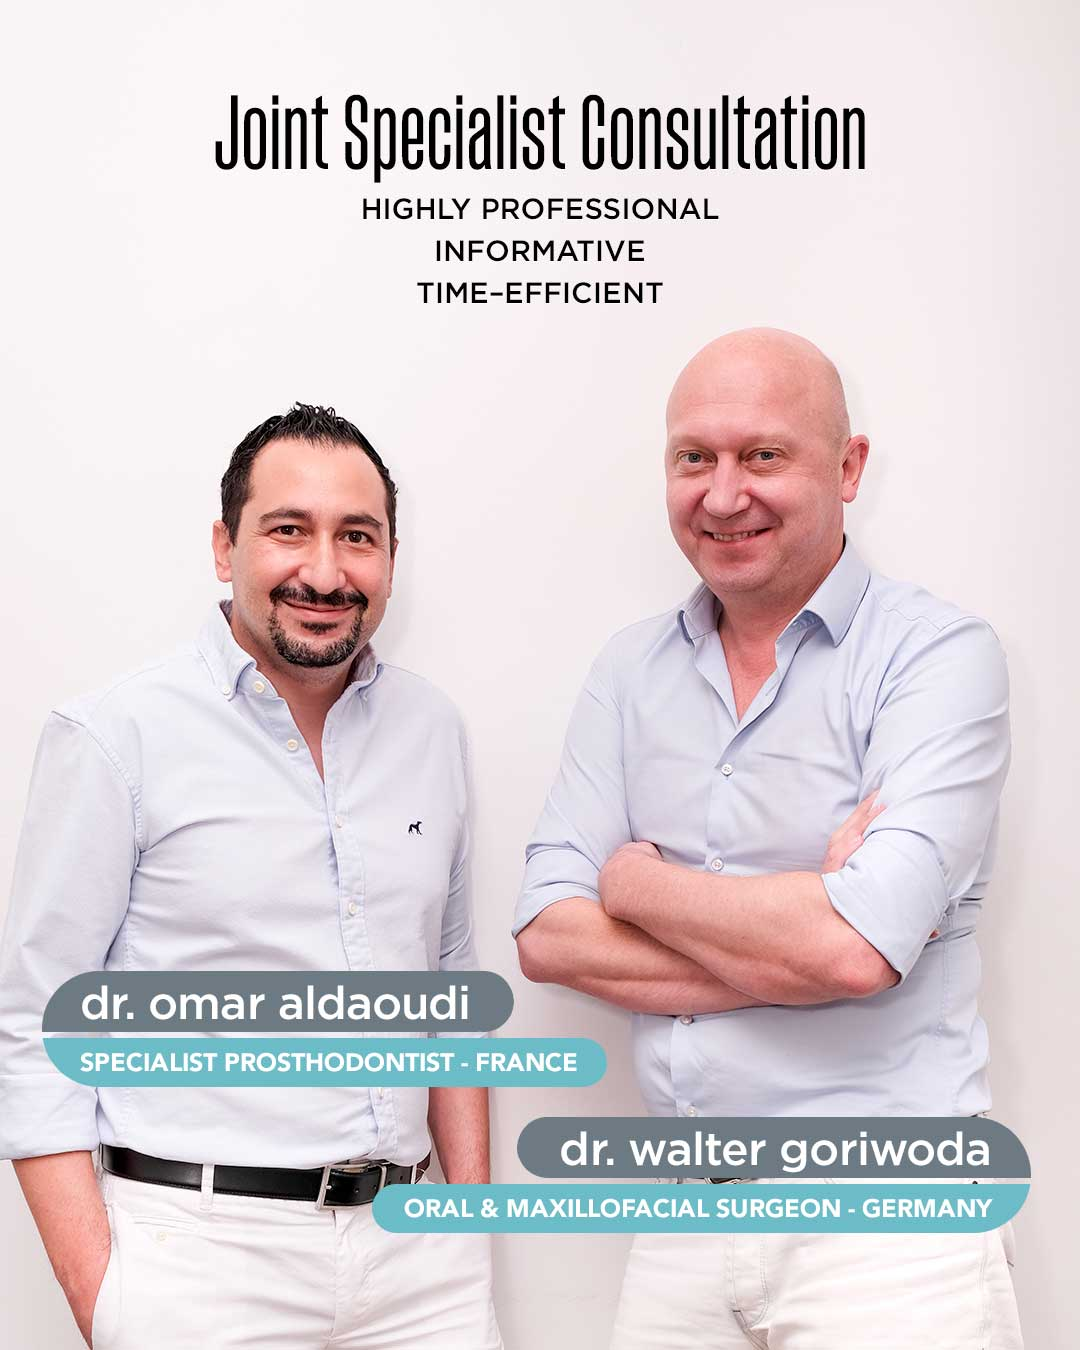 Joint Specialist Consultation